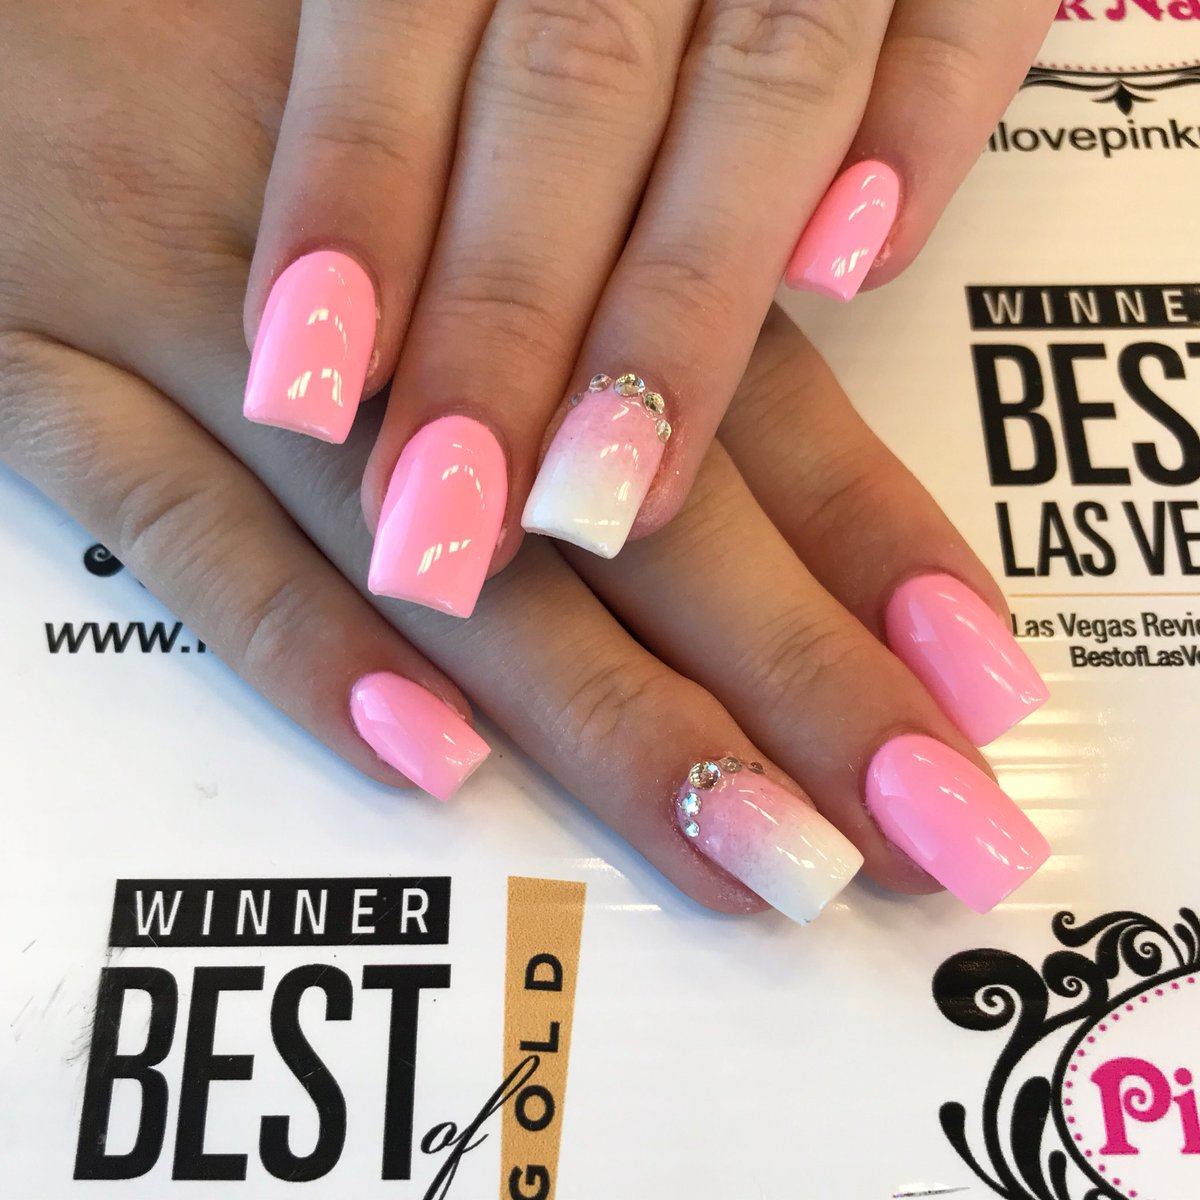 Nail Shops In Las Vegas - Best Nail 2018